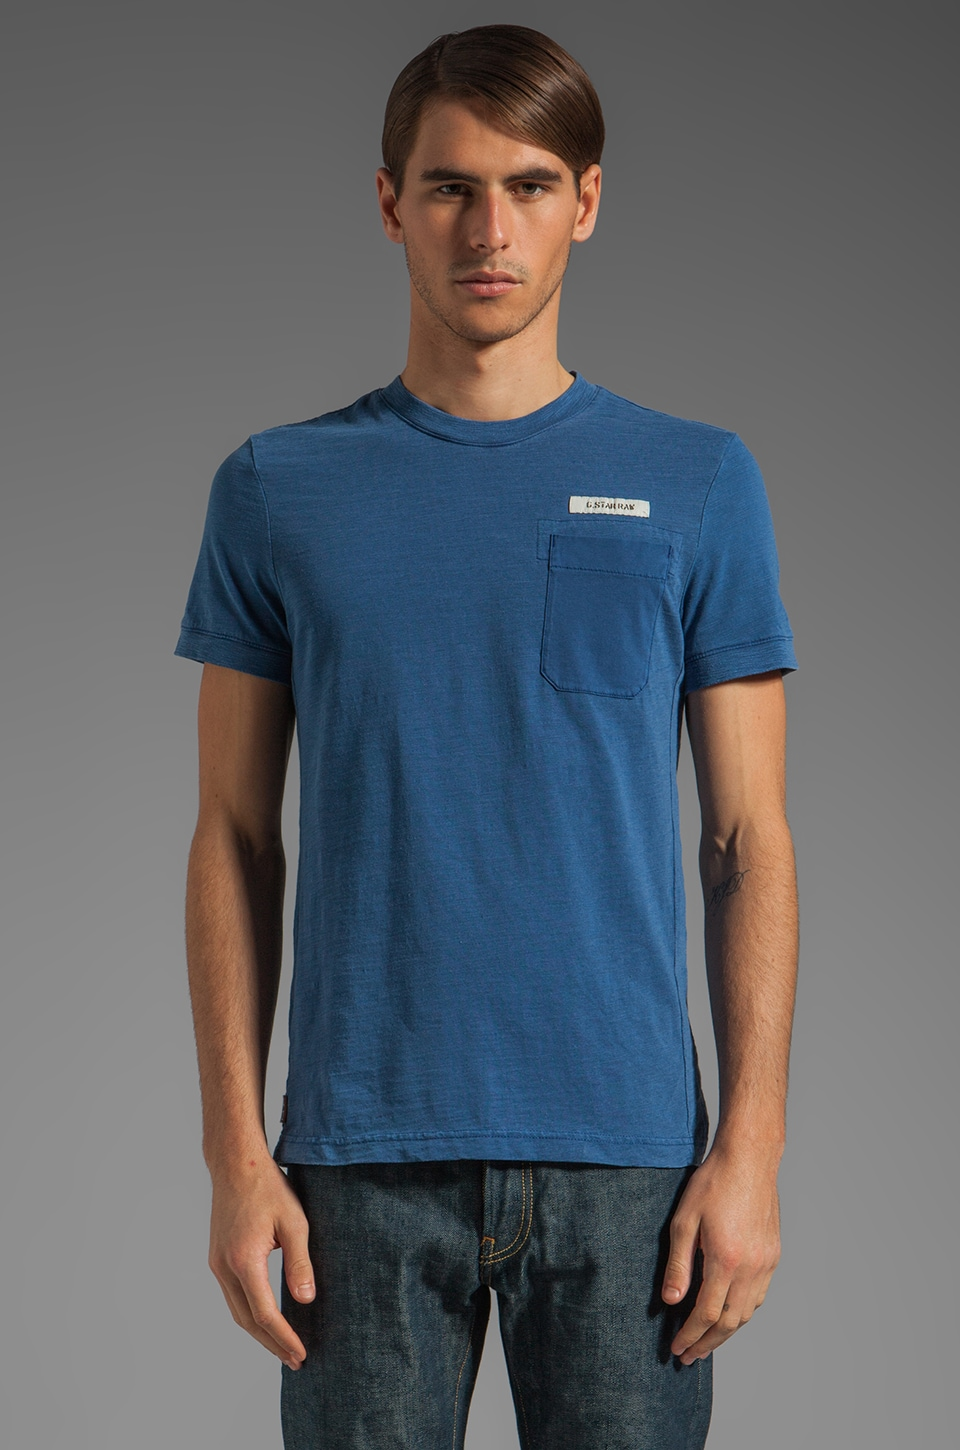 G-Star Race Tee in Deep Blue